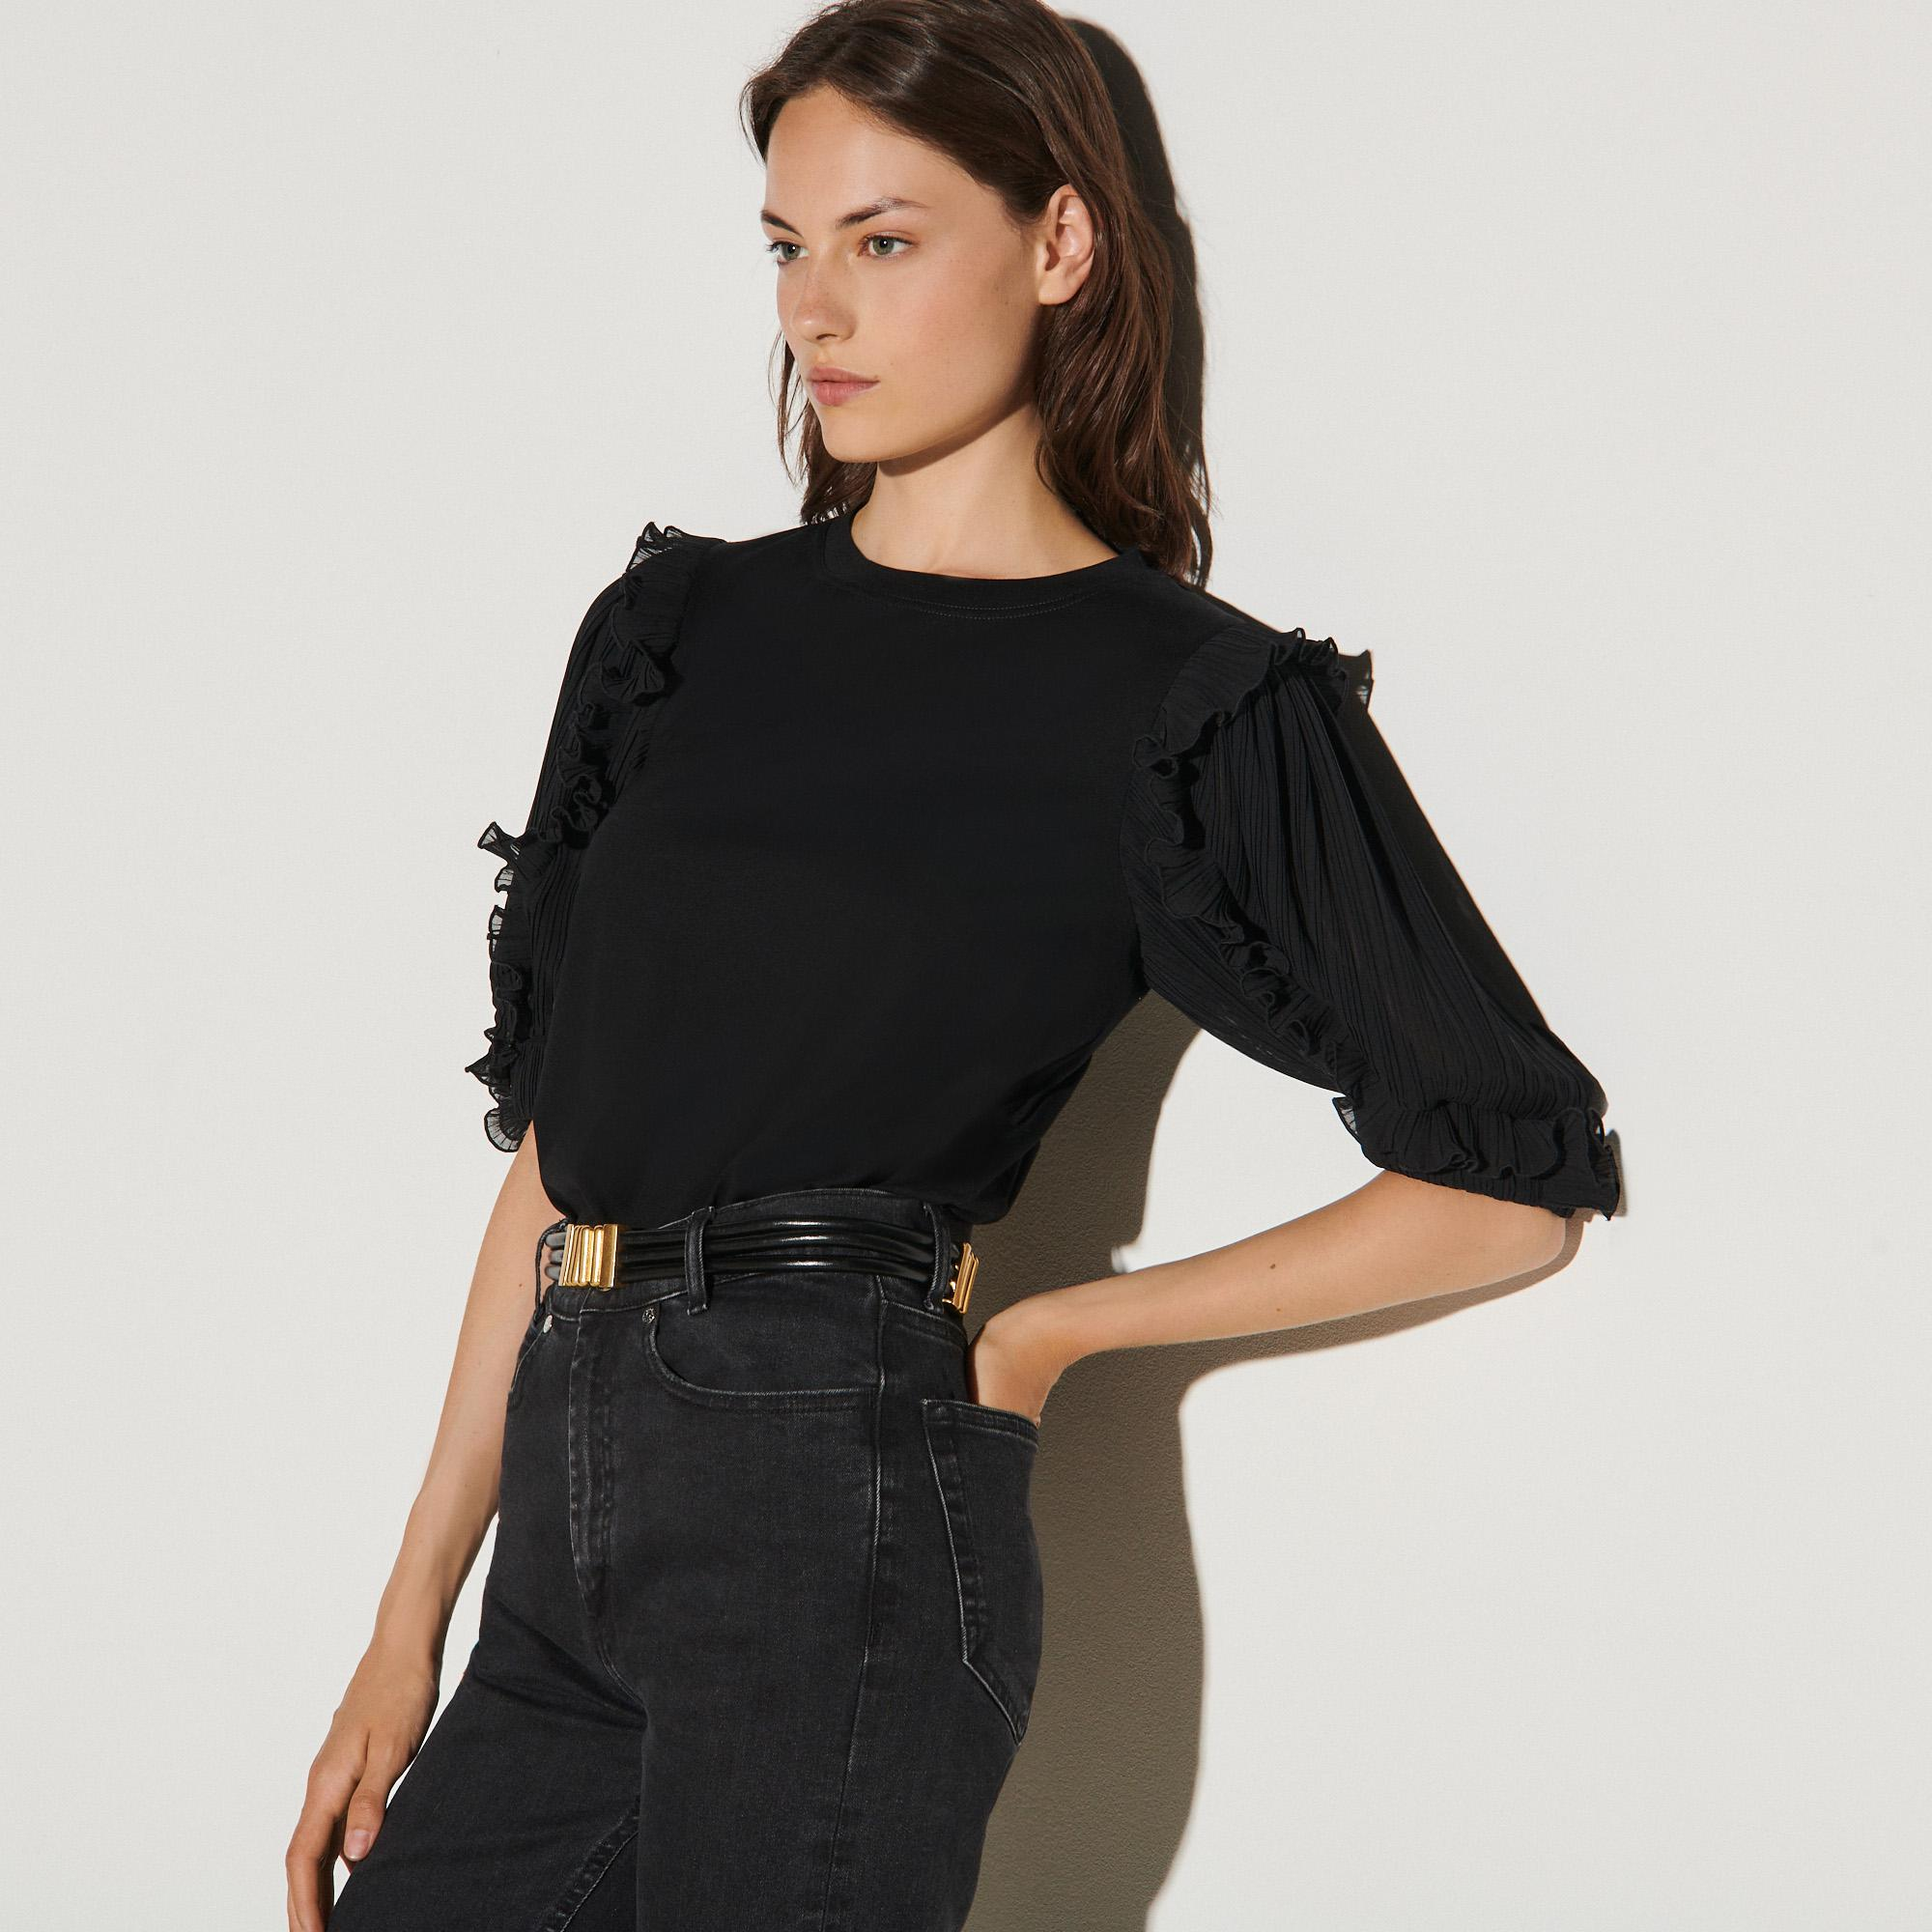 T-shirt with intricate sleeves